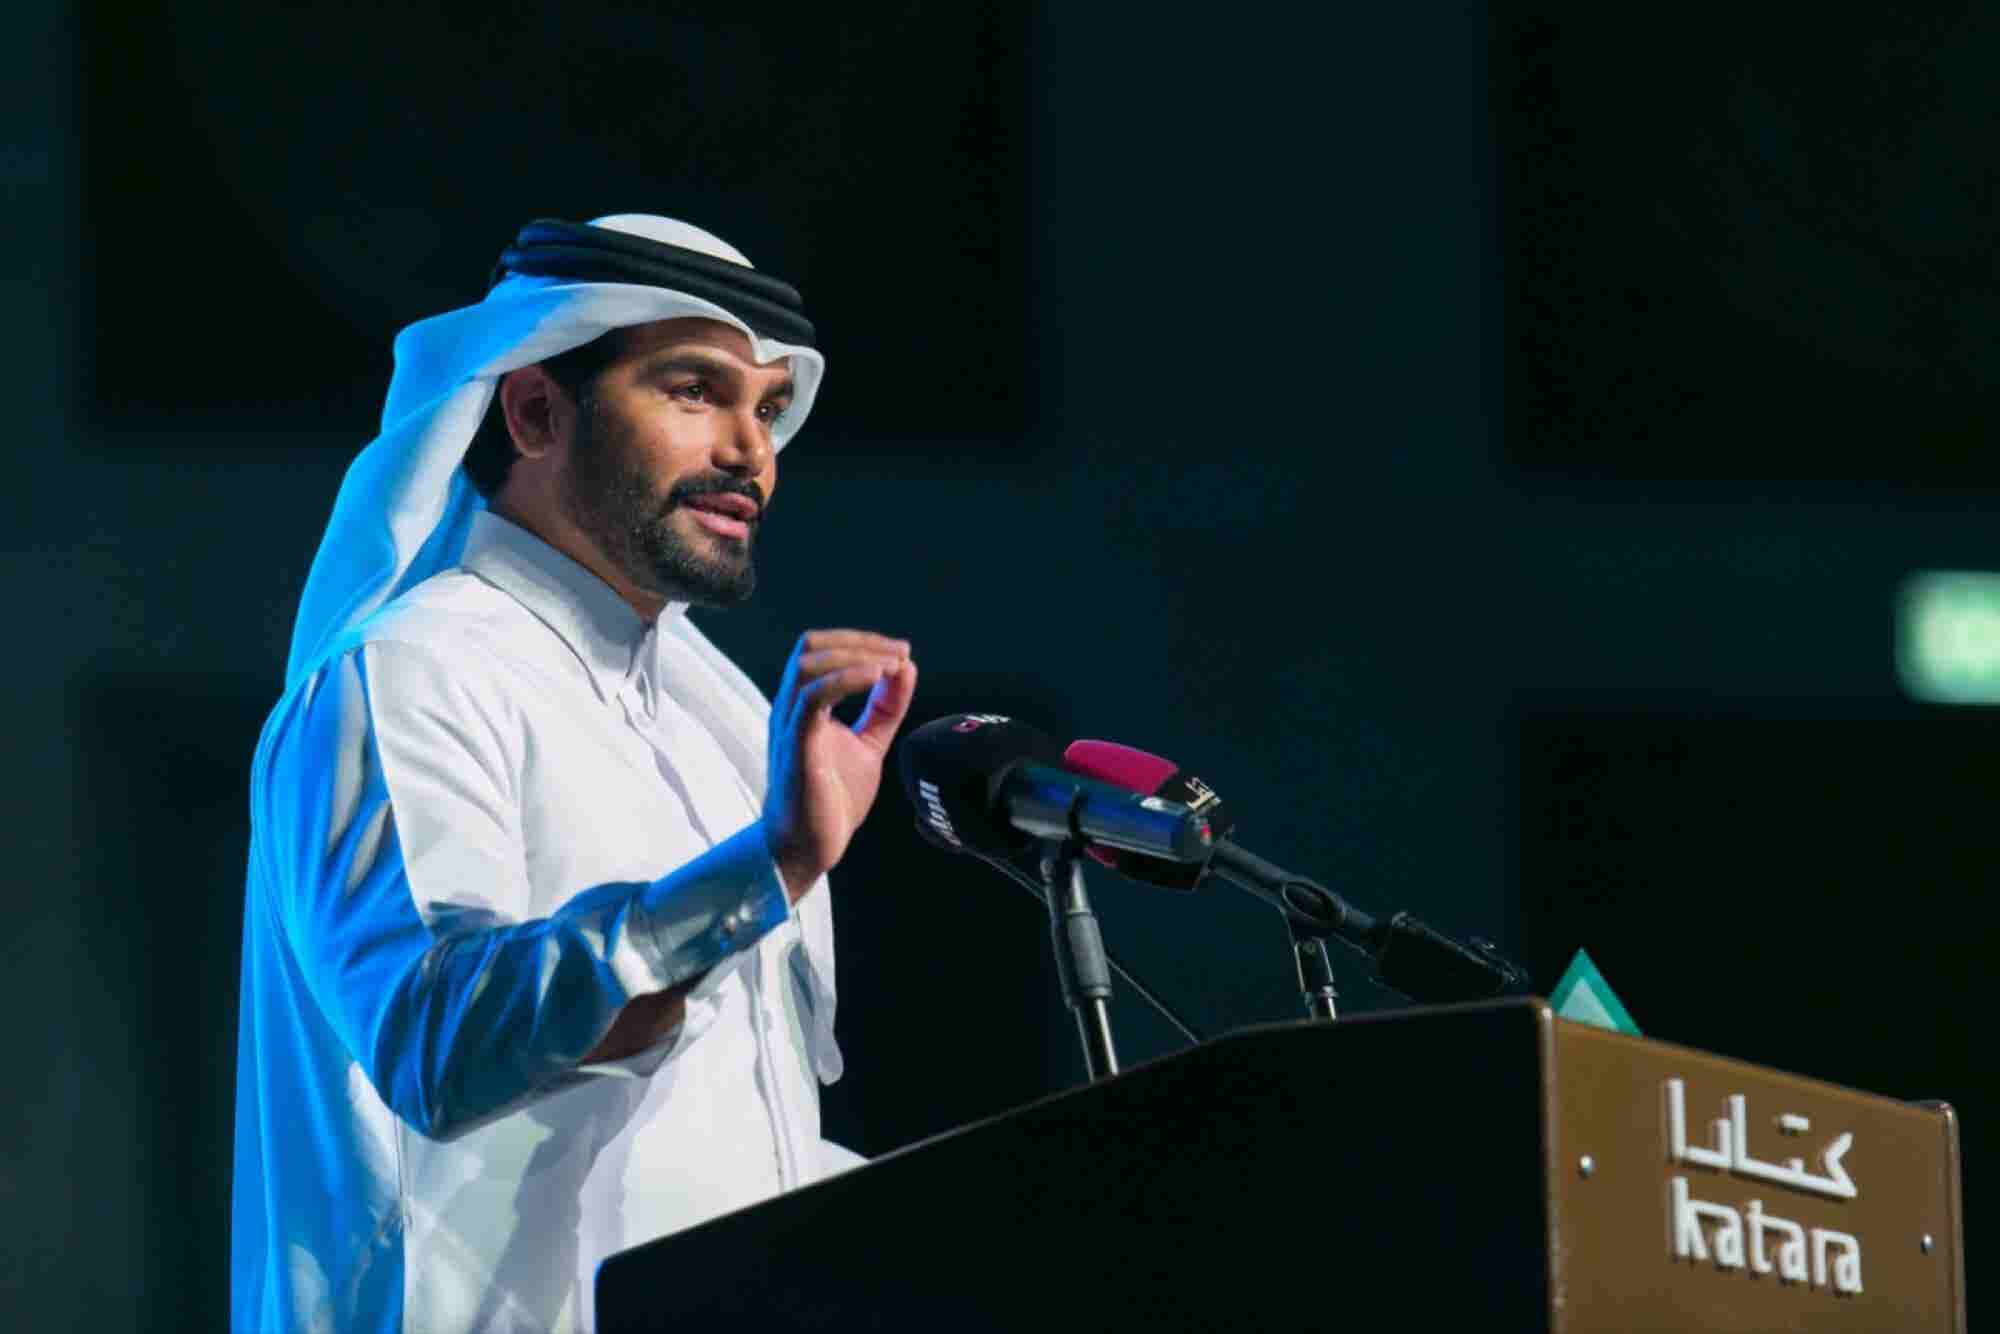 Feeding The Entrepreneurial Ecosystem With Fresh Recruits: Injaz Qatar CEO Emad Al Khaja